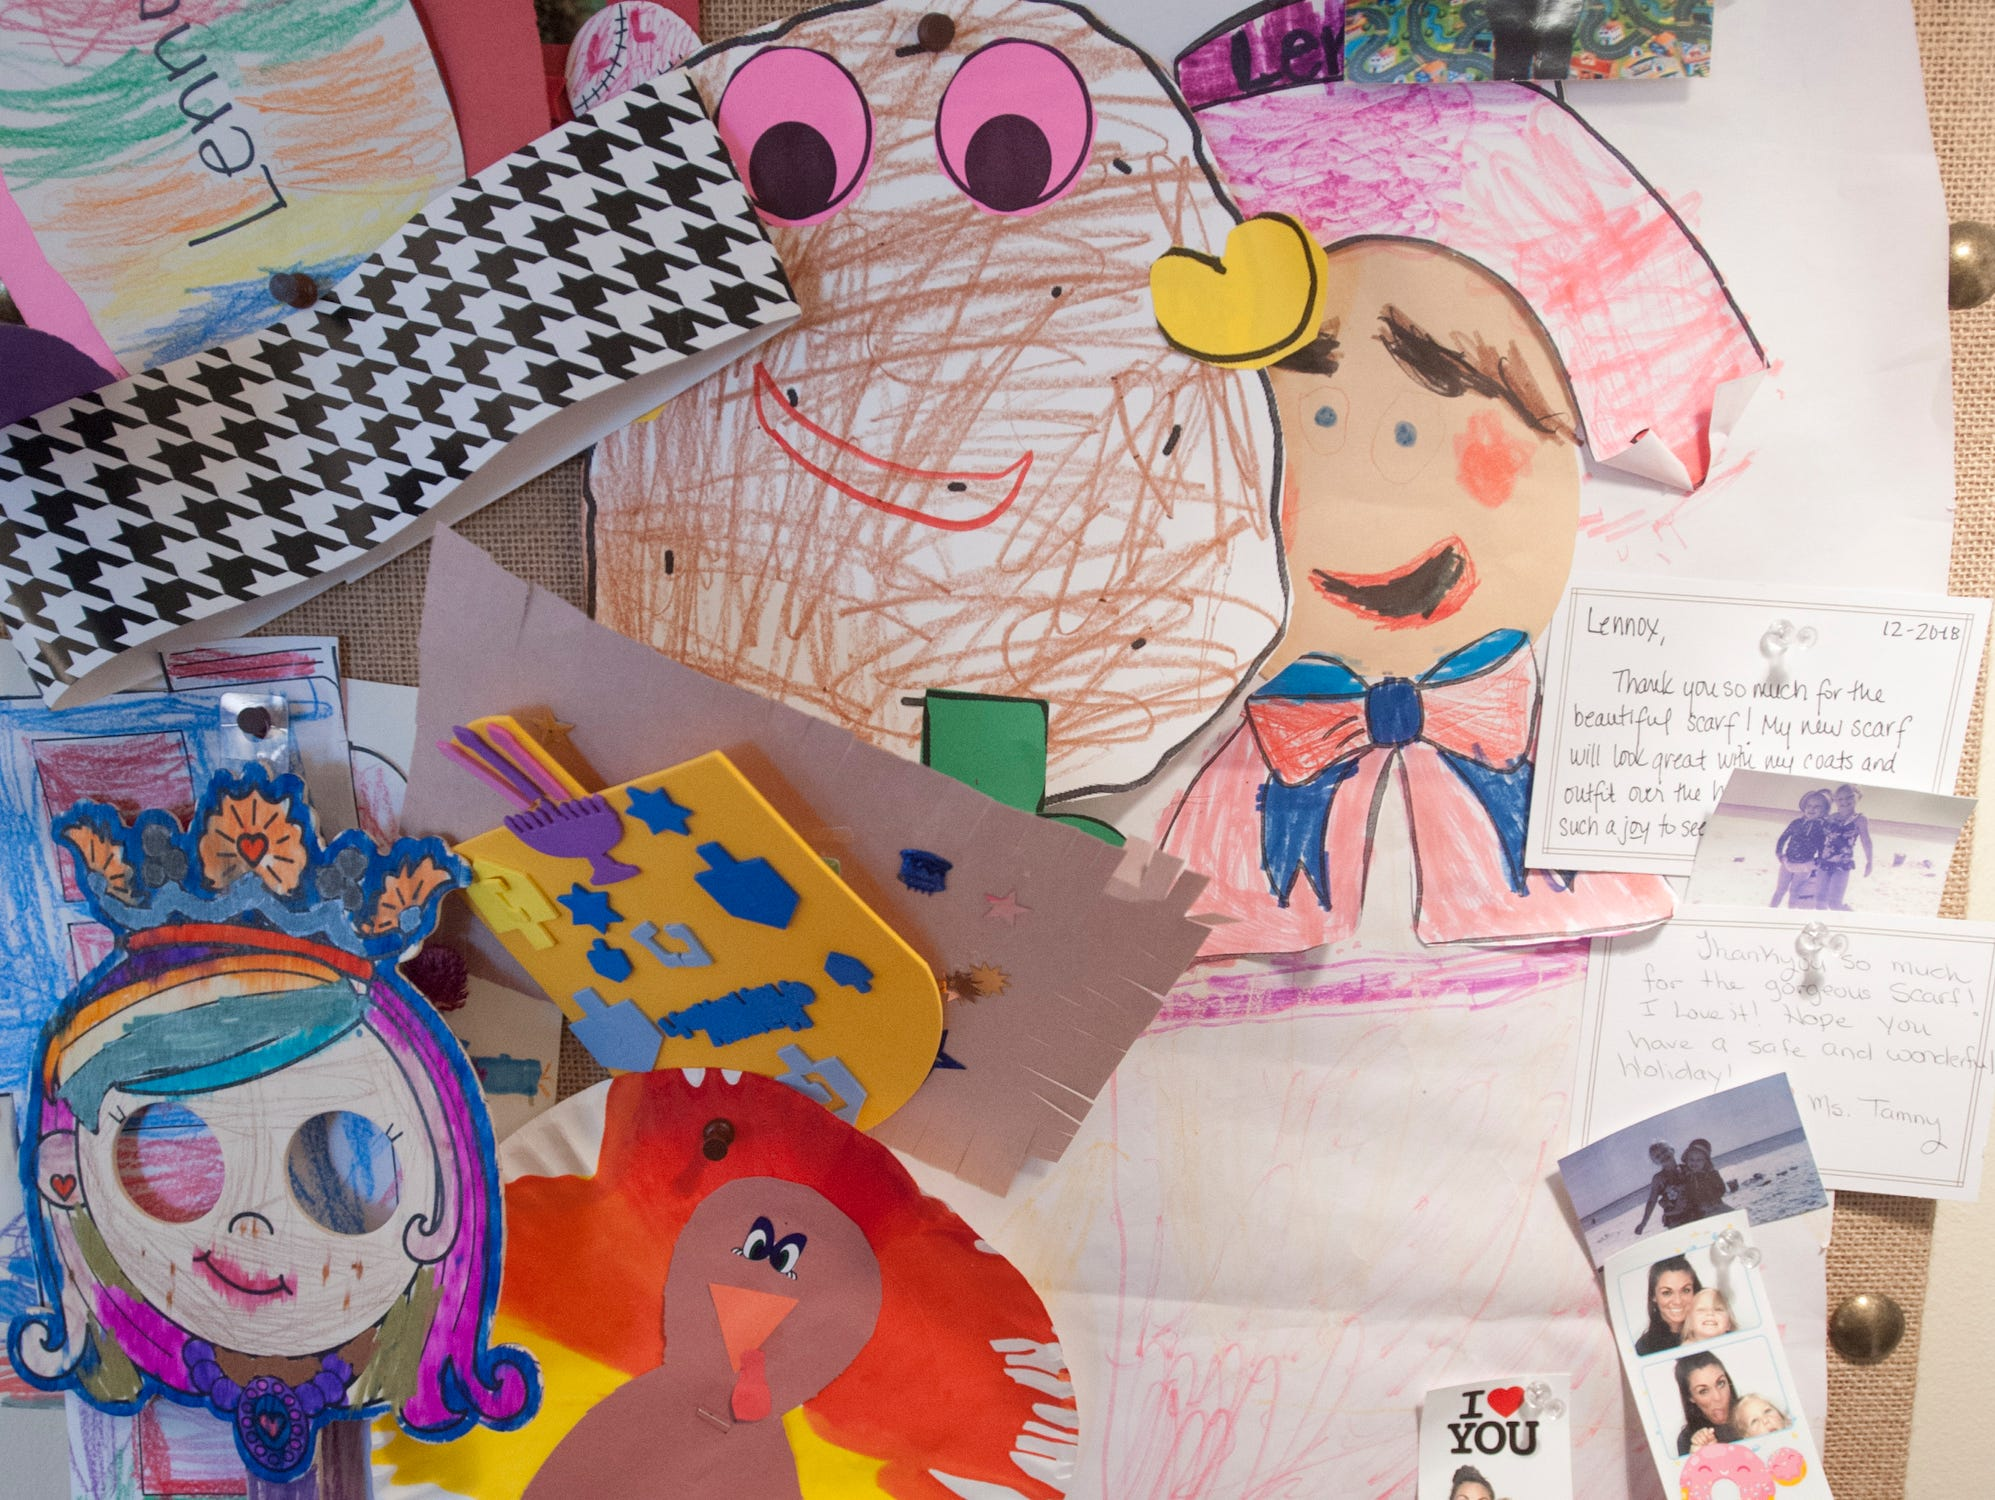 A tack board in Lennox' room is filled with completed school projects and photo booth snaps.